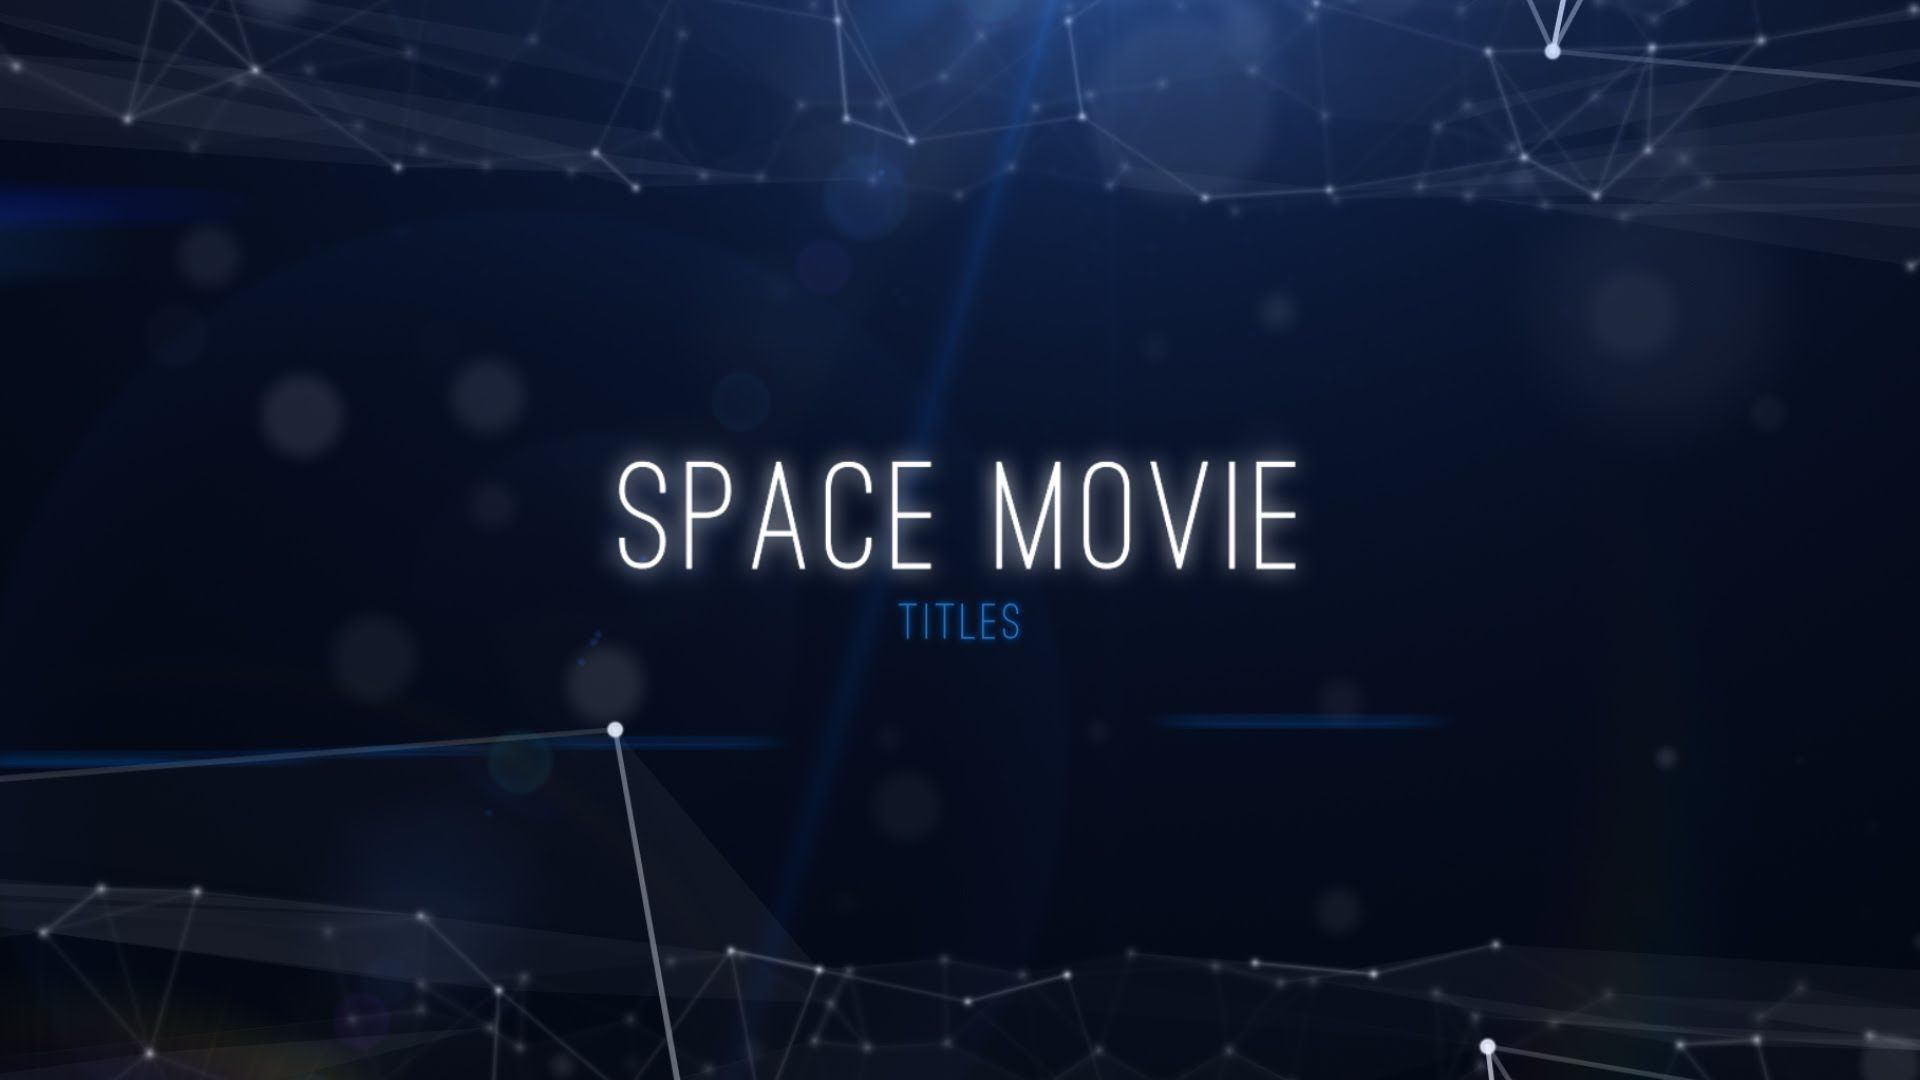 Space movie titles after effects template movie title space movie titles after effects template pronofoot35fo Gallery